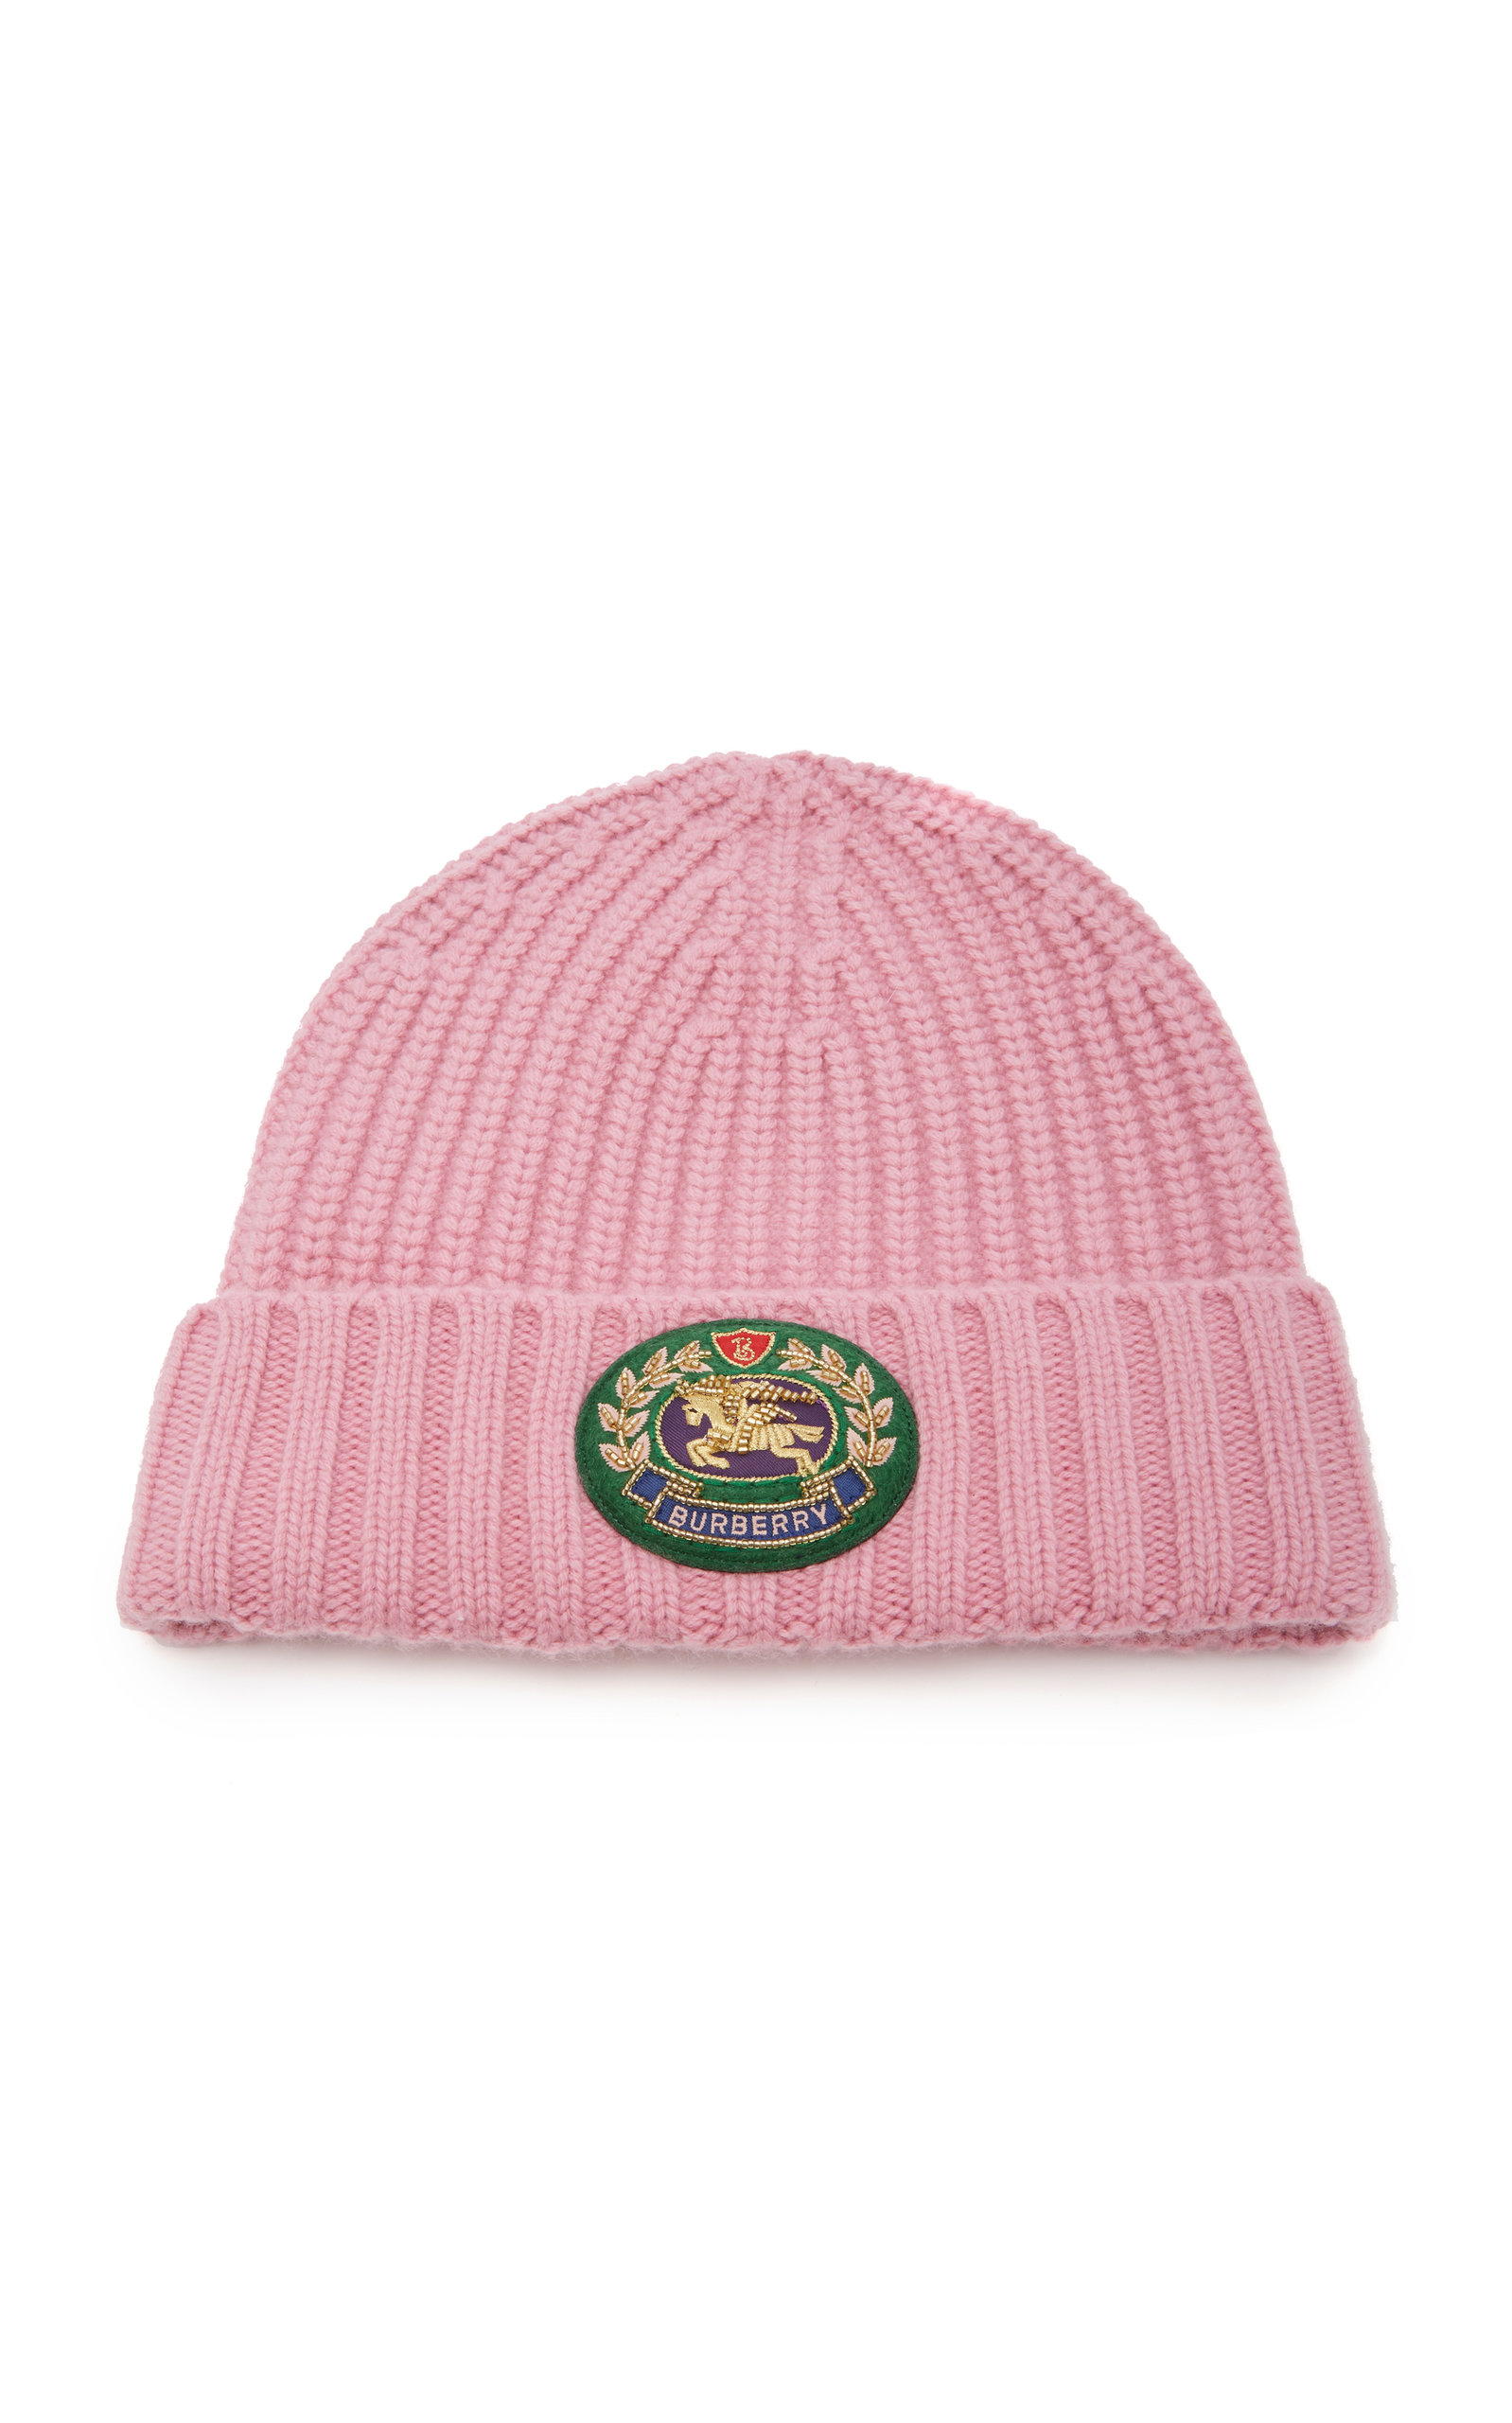 464bdb51ef5b9 Burberry Embroidered Wool And Cashmere-Blend Beanie In Pink